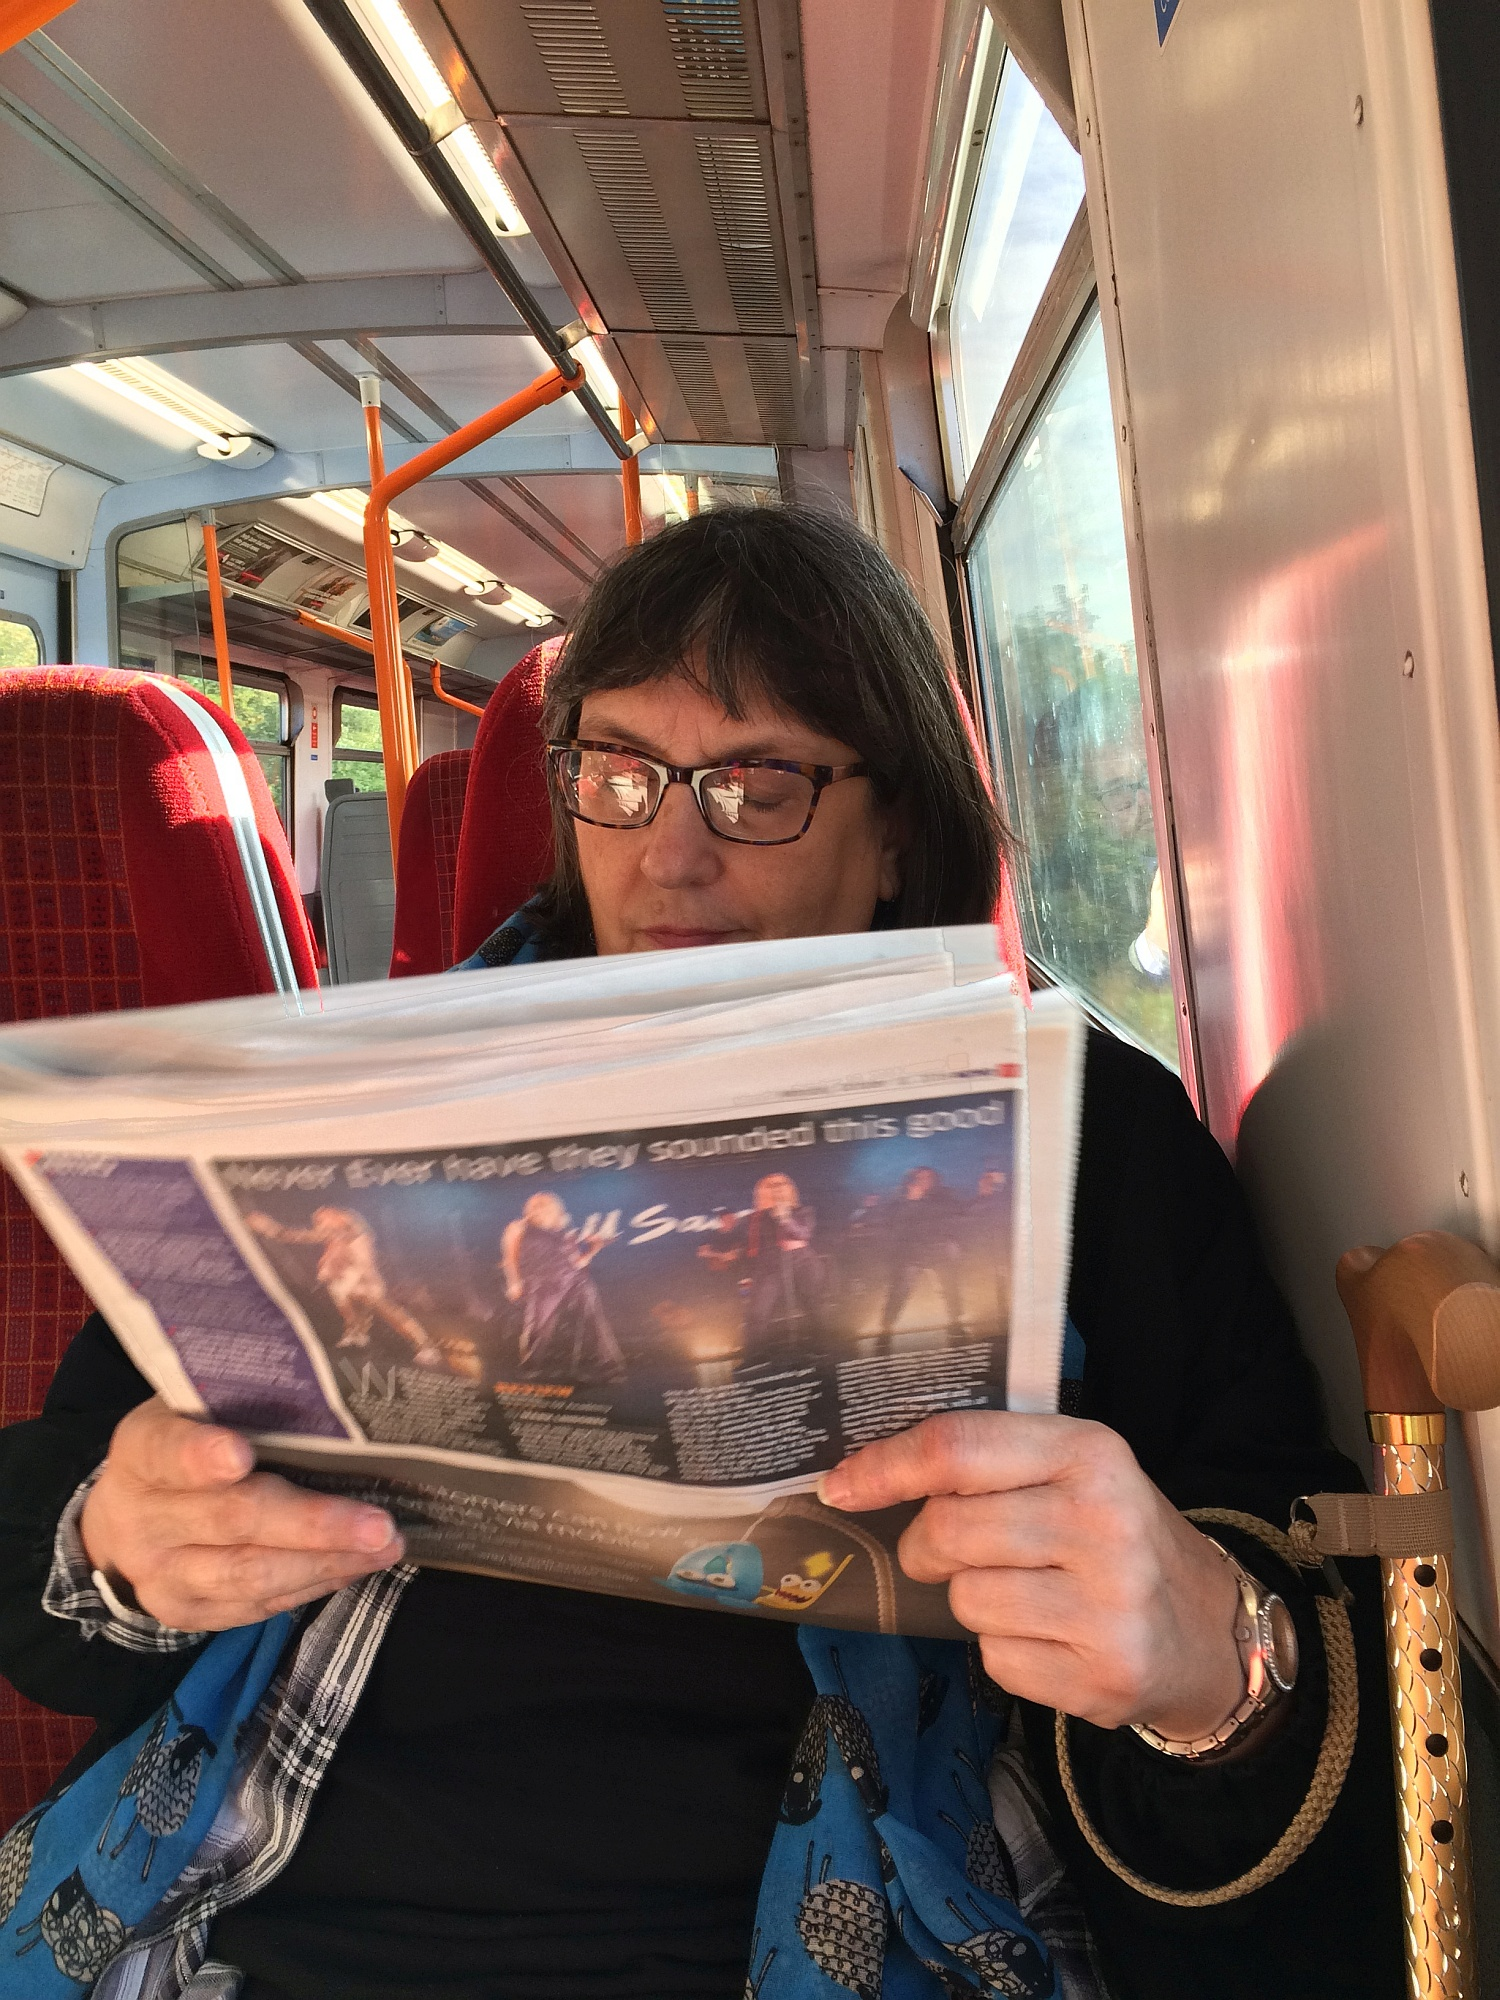 Norah enjoying the free newspaper they give our morning and evening at all transport stops. A different paper each morning and evening. Print media still has lots of legs in the UK.